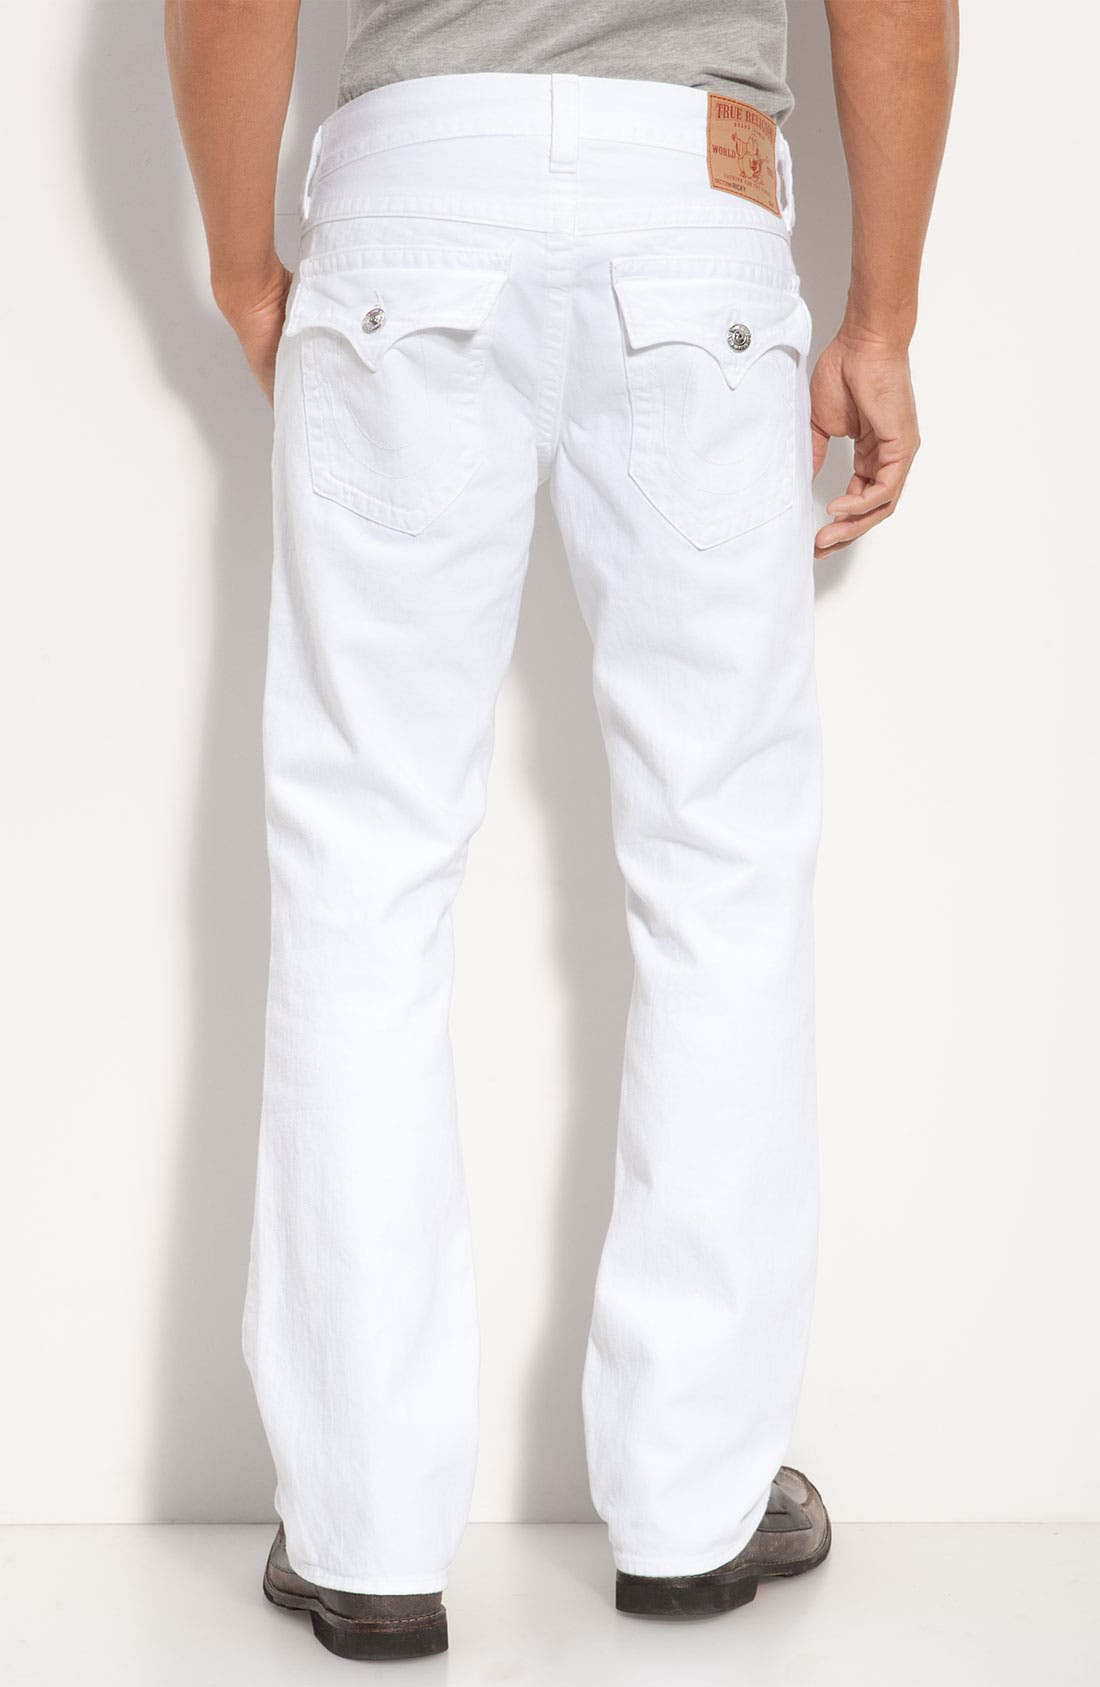 Alternate Image 1 Selected - True Religion Brand Jeans 'Ricky' Relaxed Straight Leg Jeans (Optic Rinse)